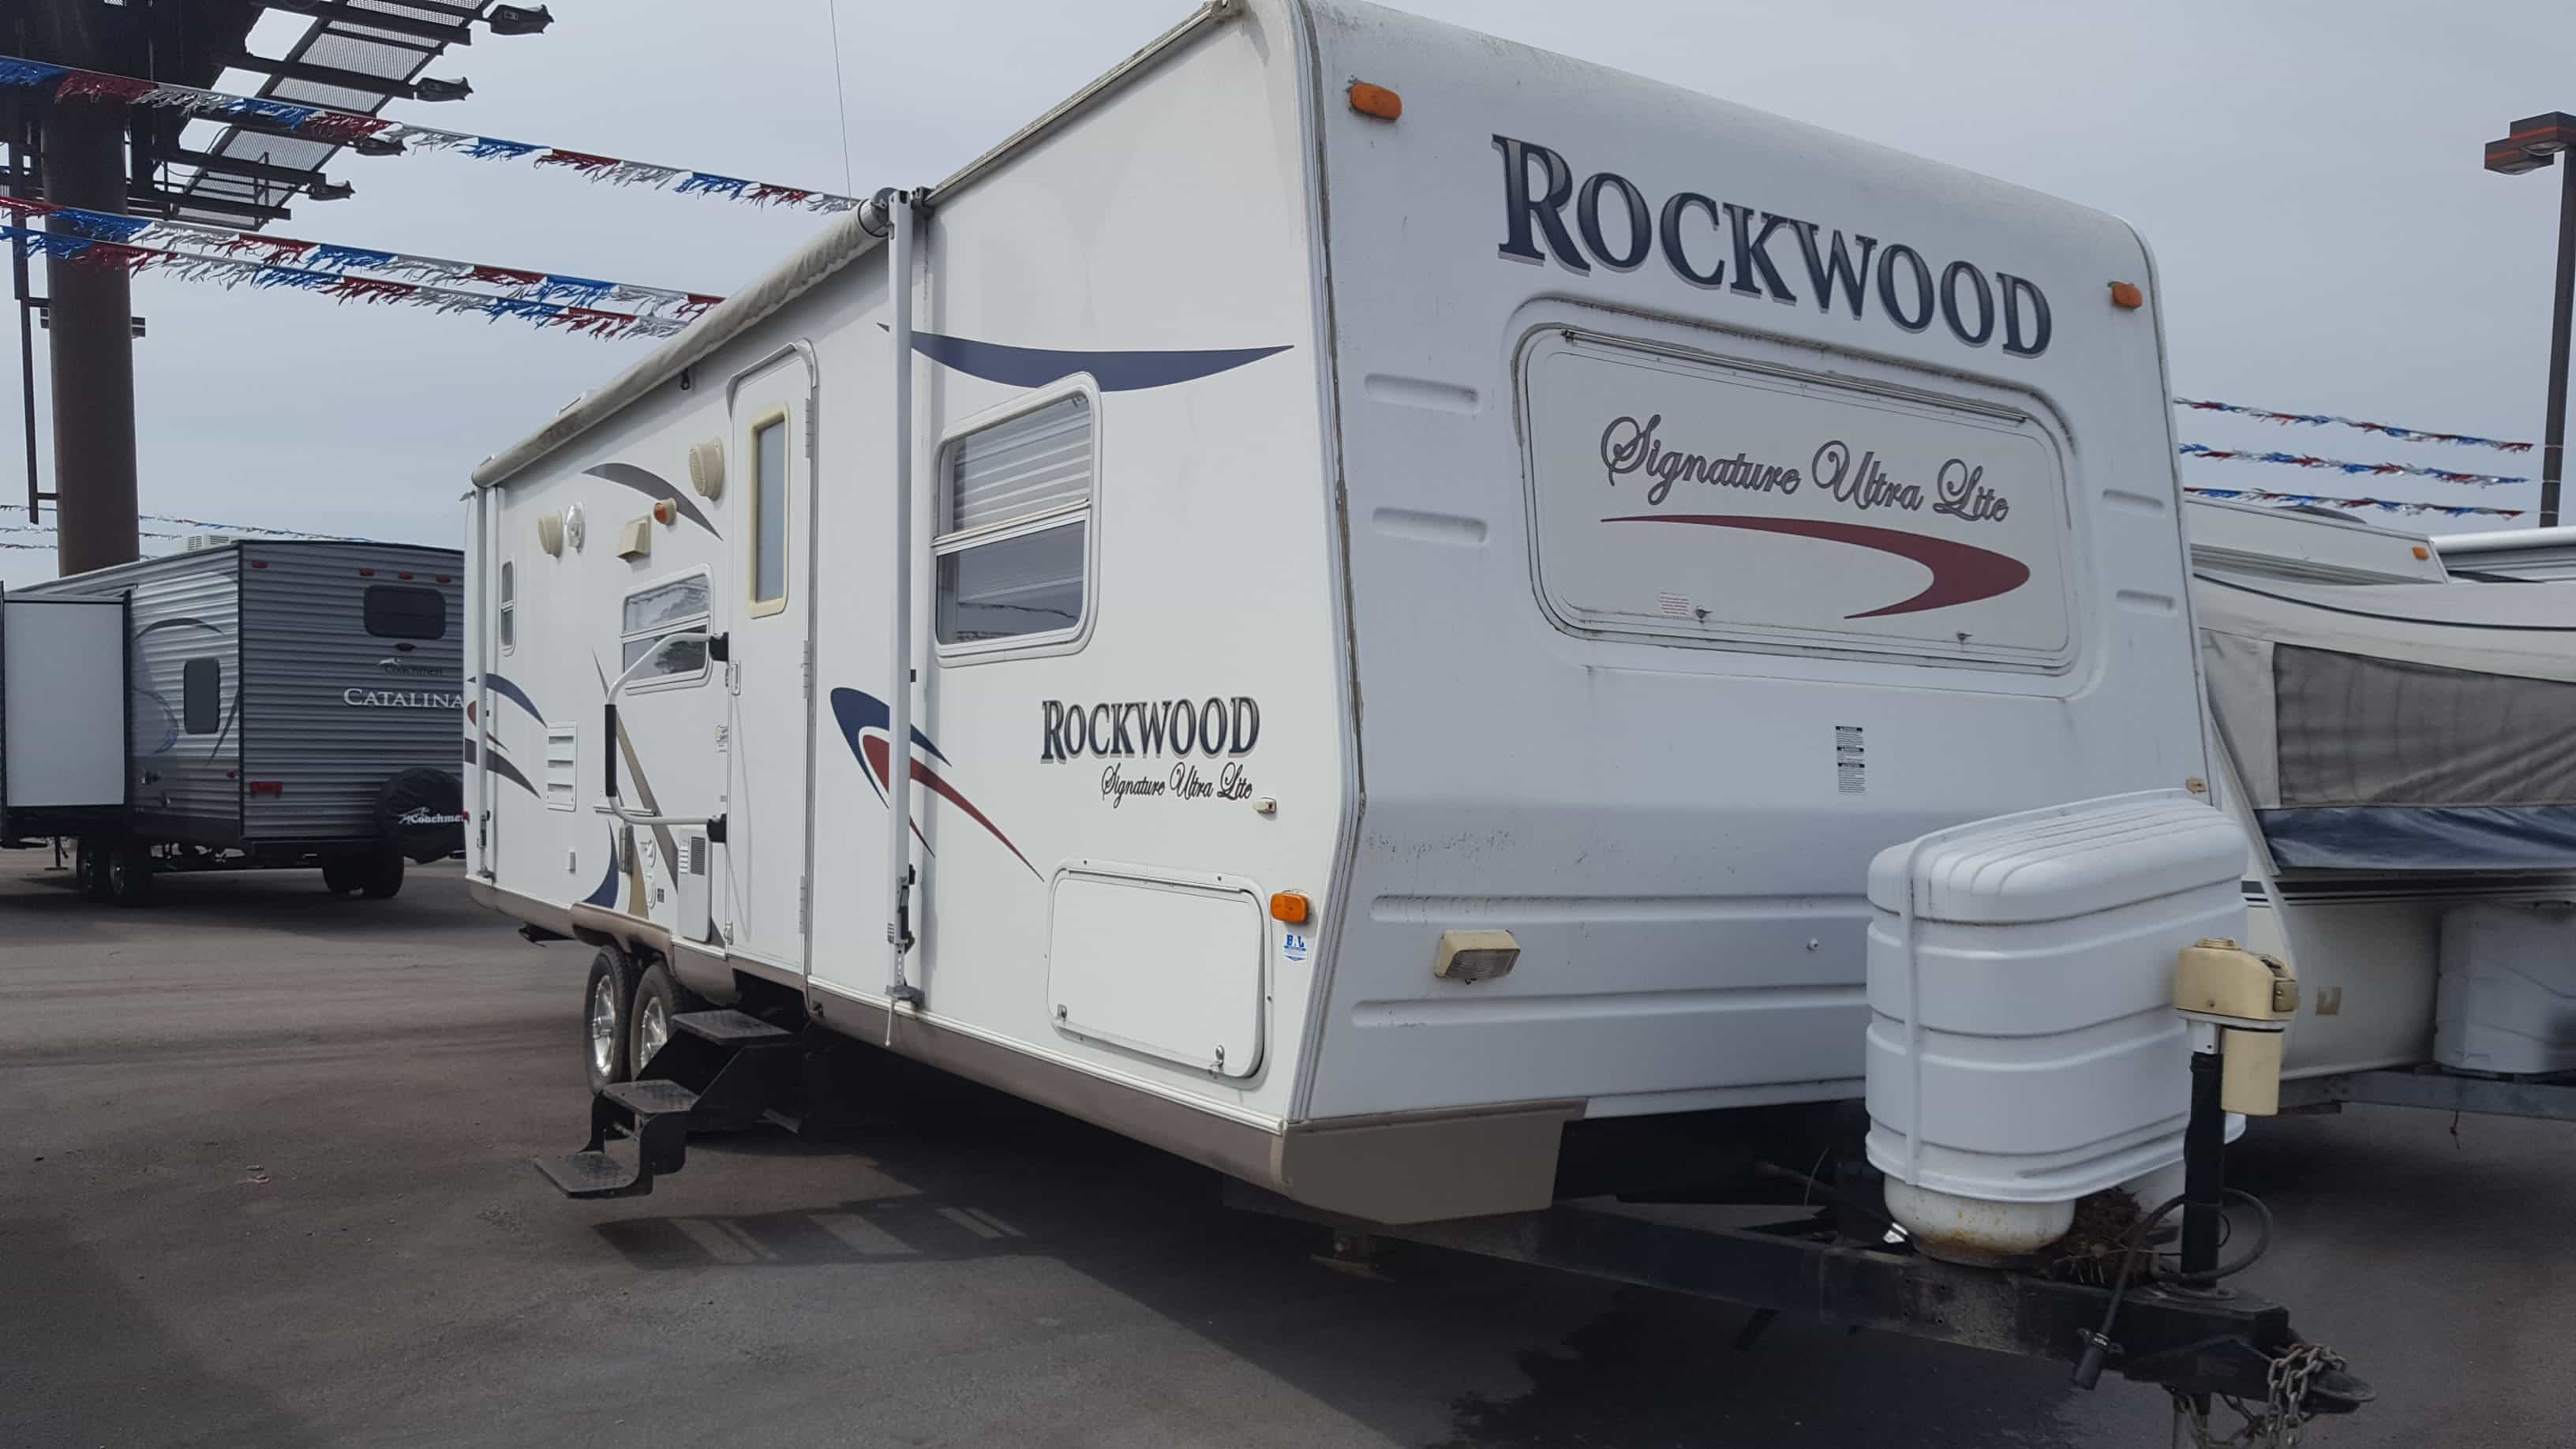 USED 2007 Forest River ROCKWOOD 8293SS - American RV